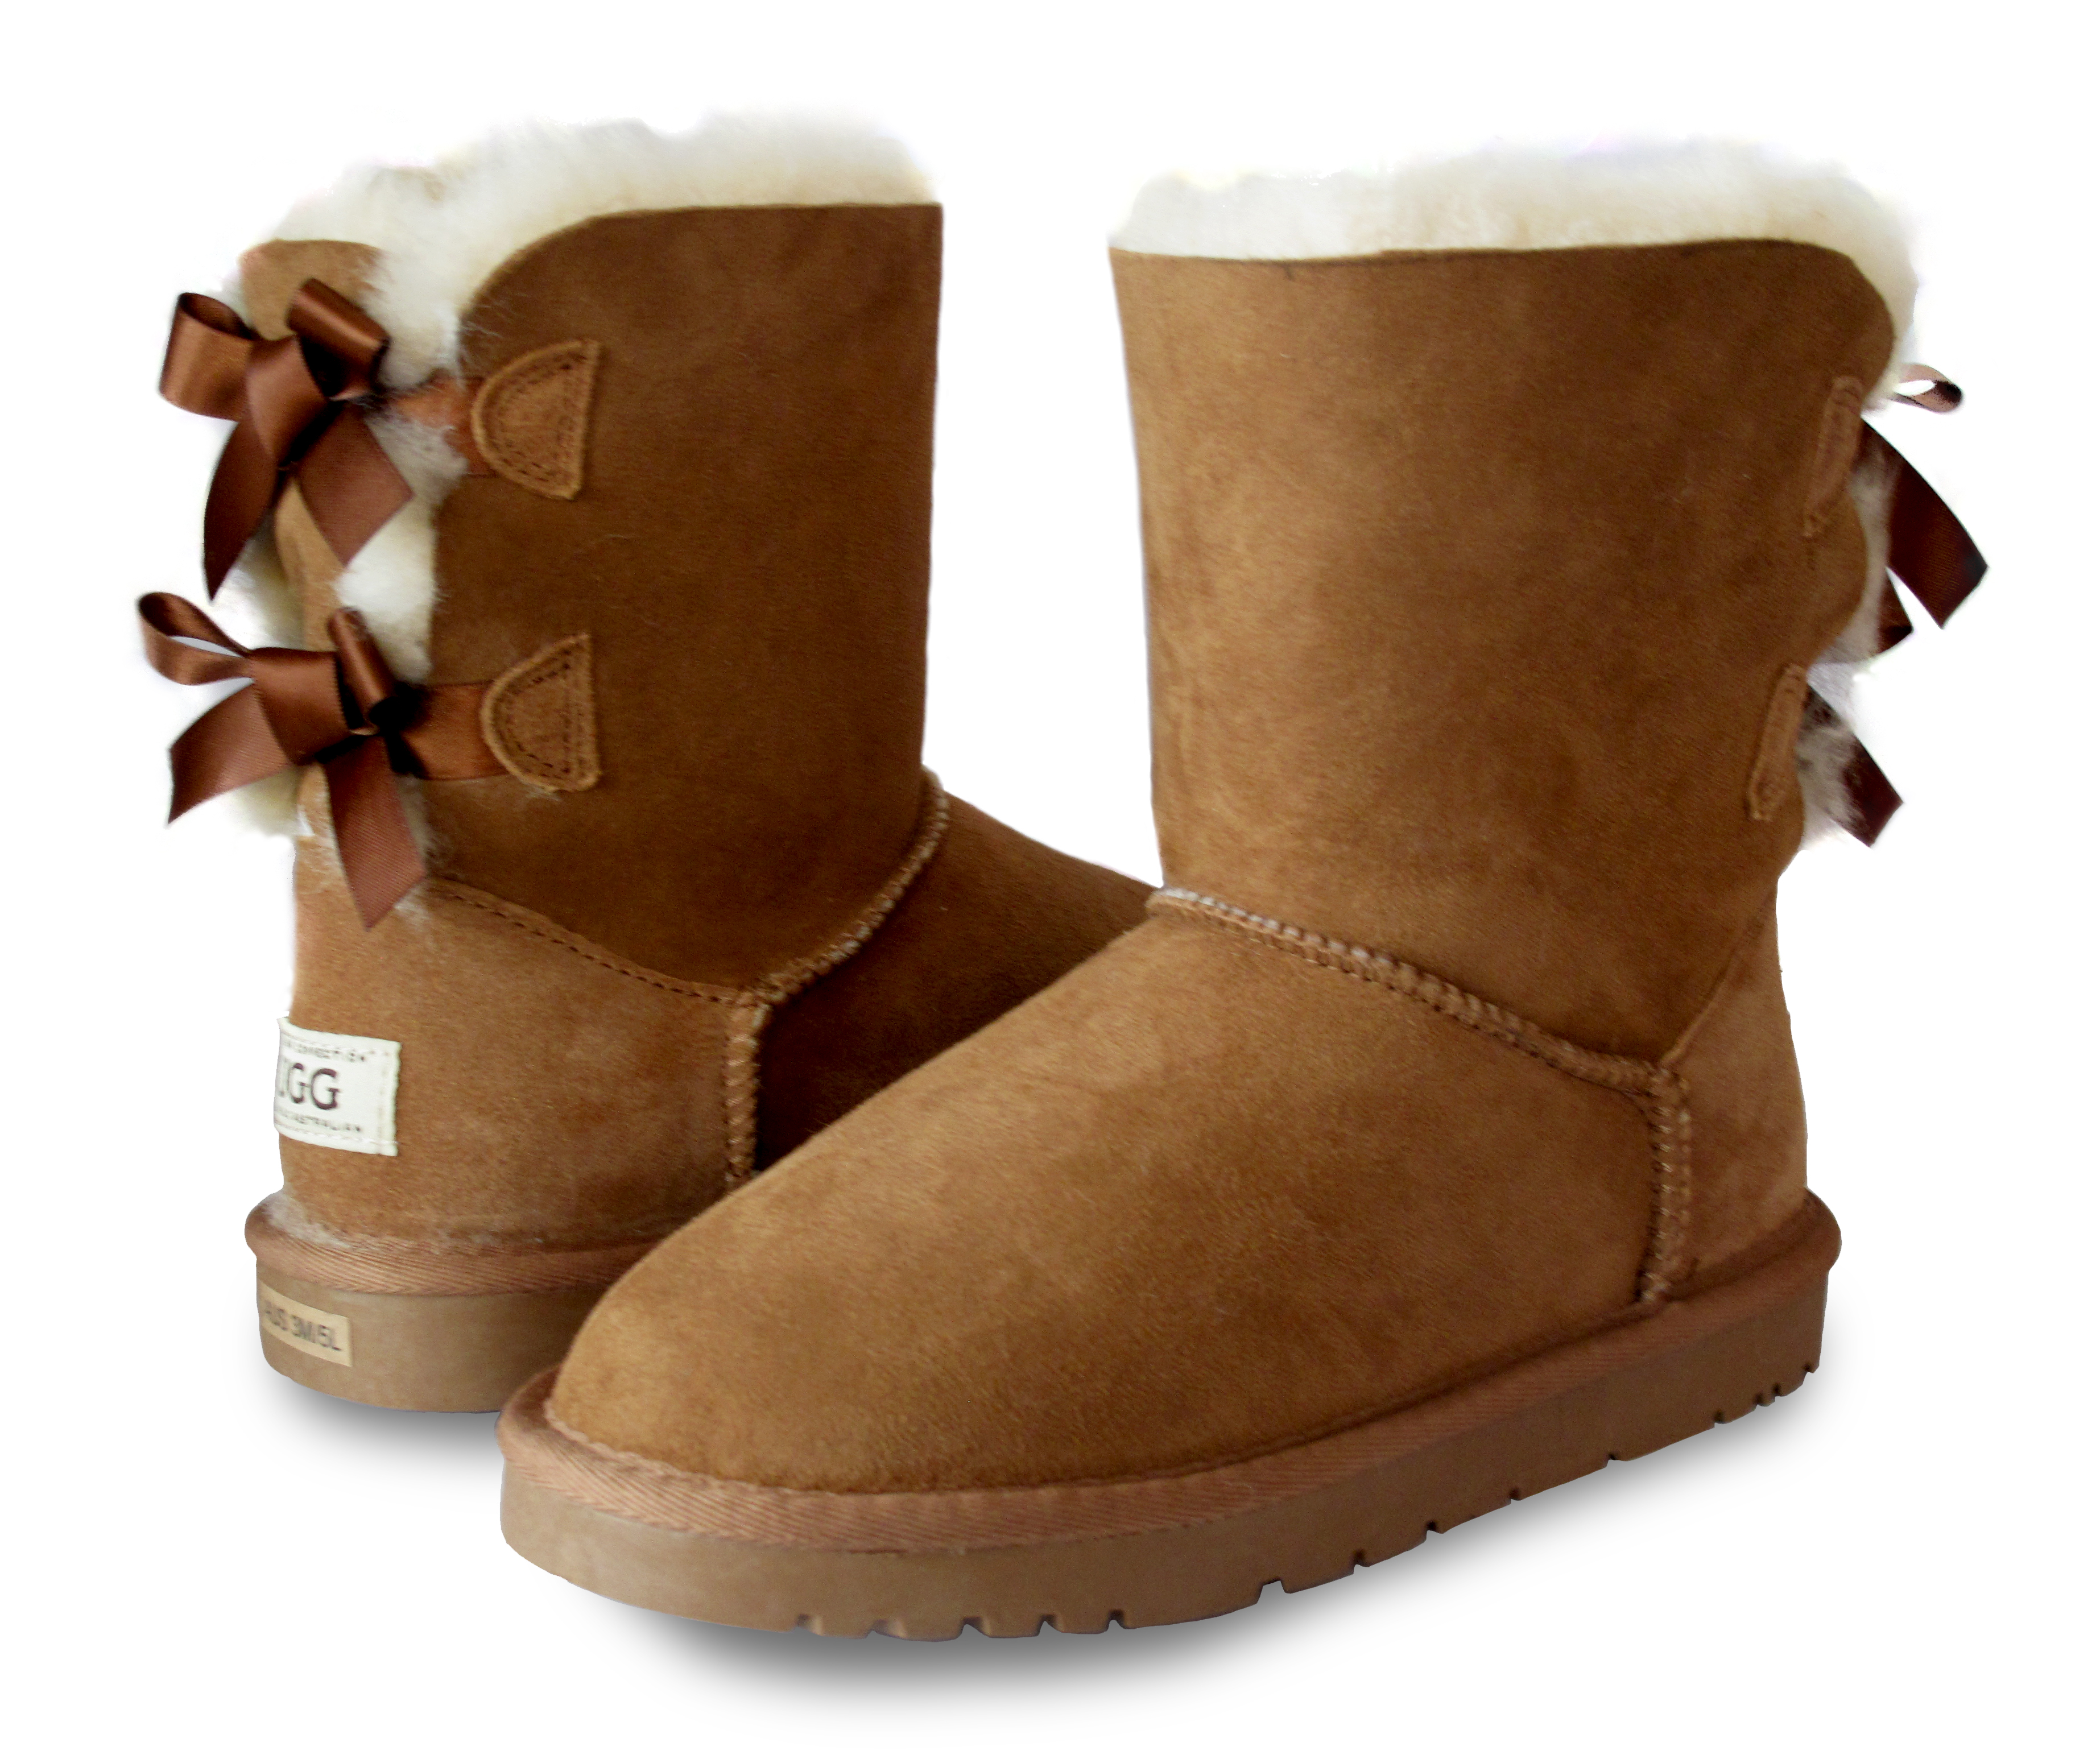 ugg slippers groupon